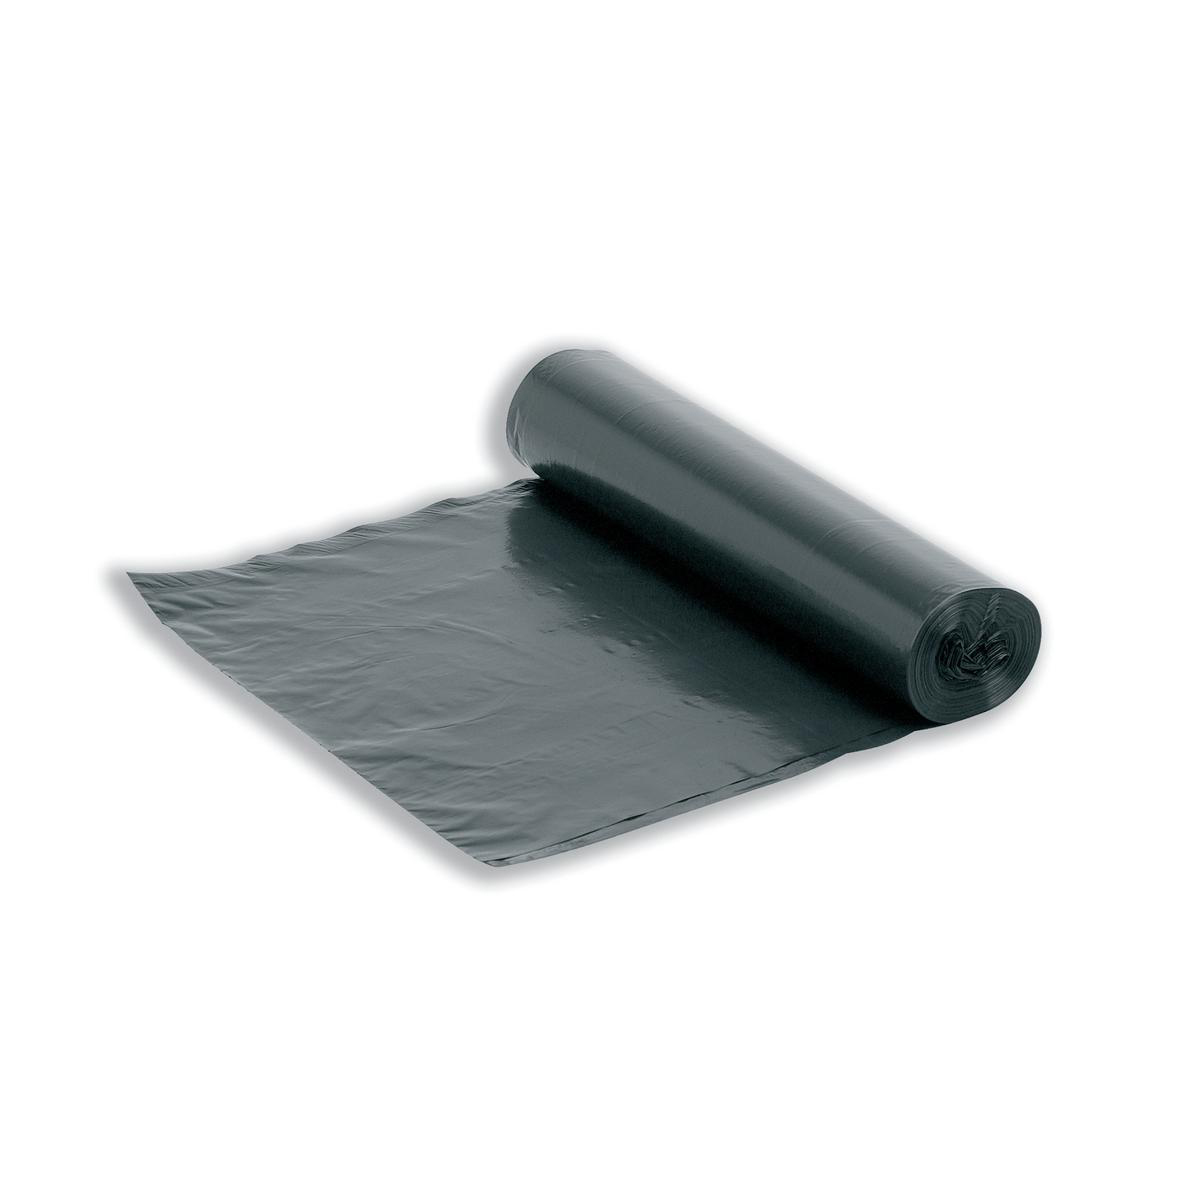 Bin Bags & Liners 5 Star Facilities Bin Liners Heavy Duty 95 Litre Capacity W370/705xH860mm Black Roll 300